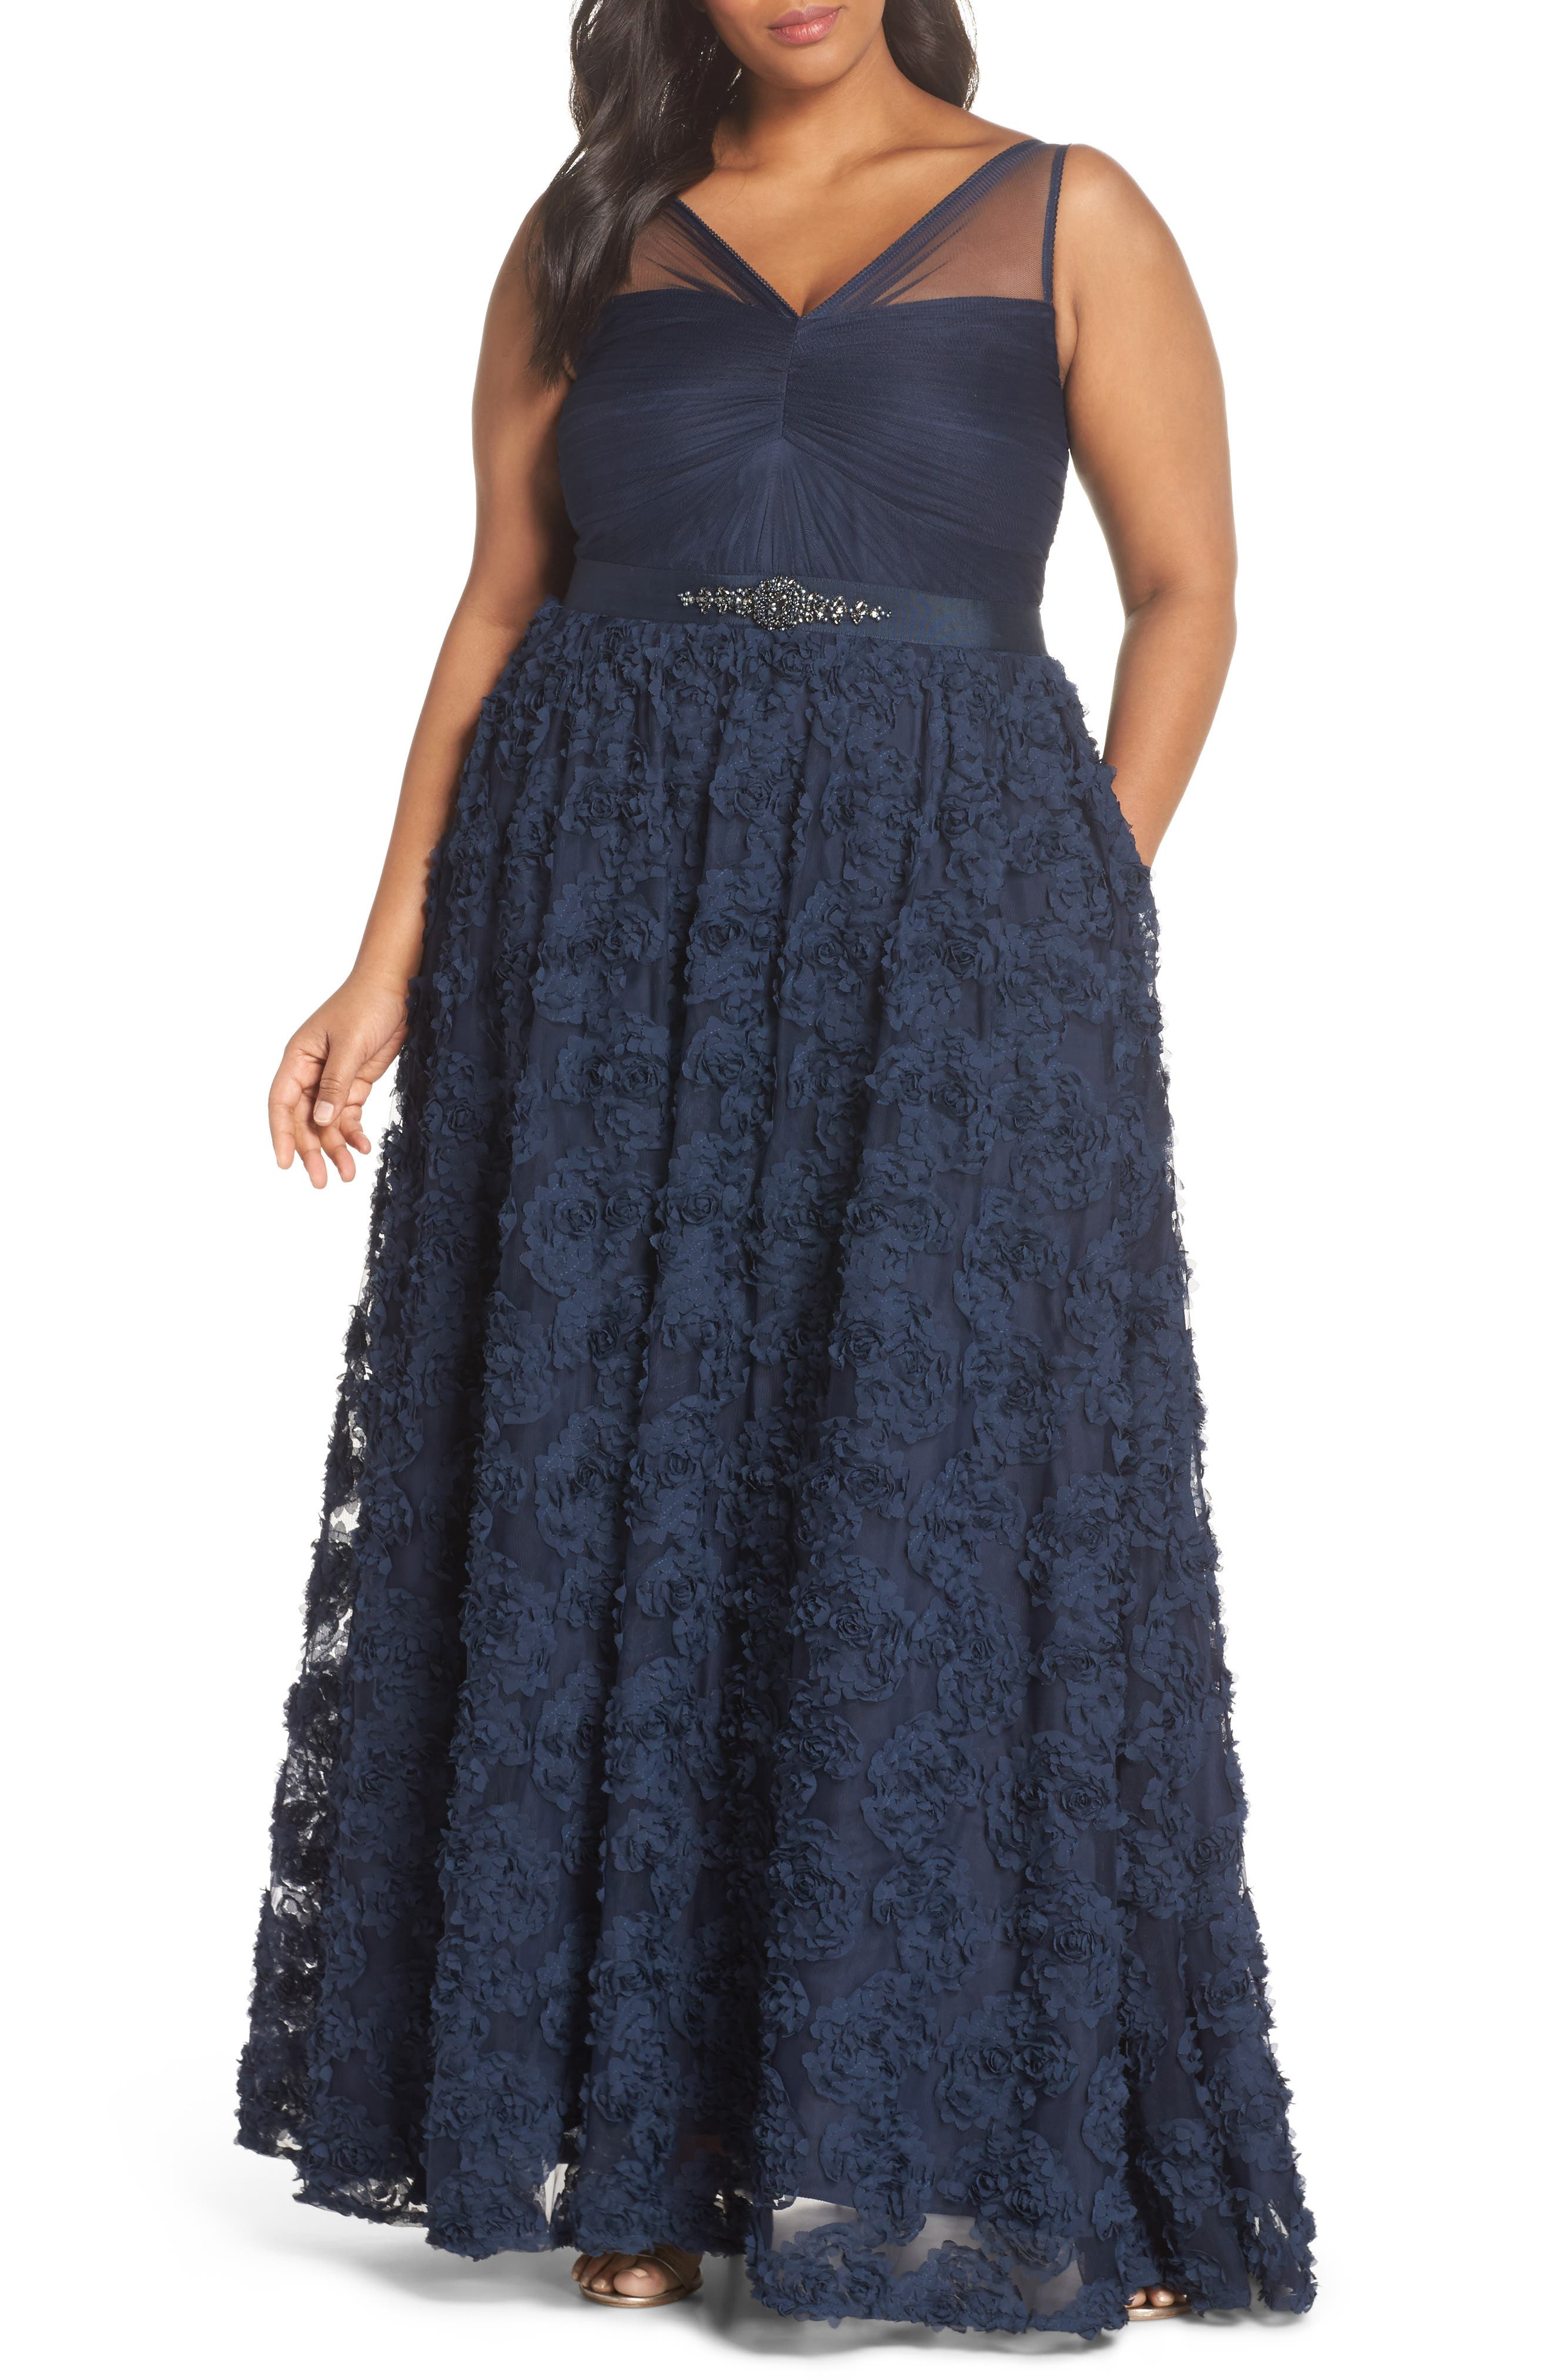 Adrianna Papell Embellished Petal Chiffon Ballgown (Plus Size)